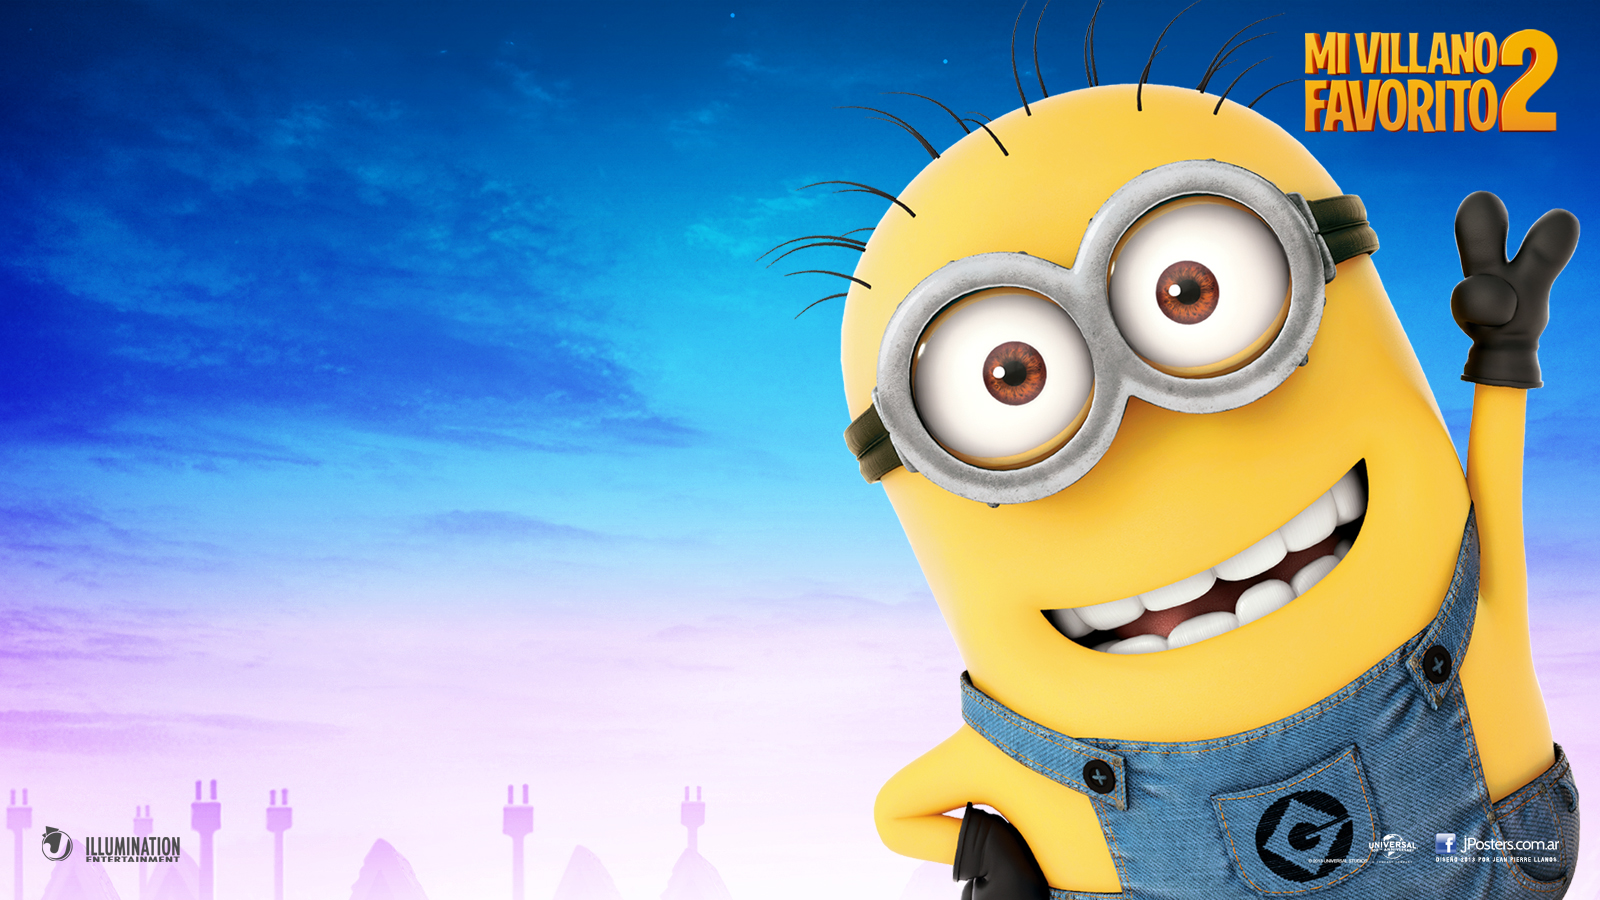 Minions desnudo erotic photos